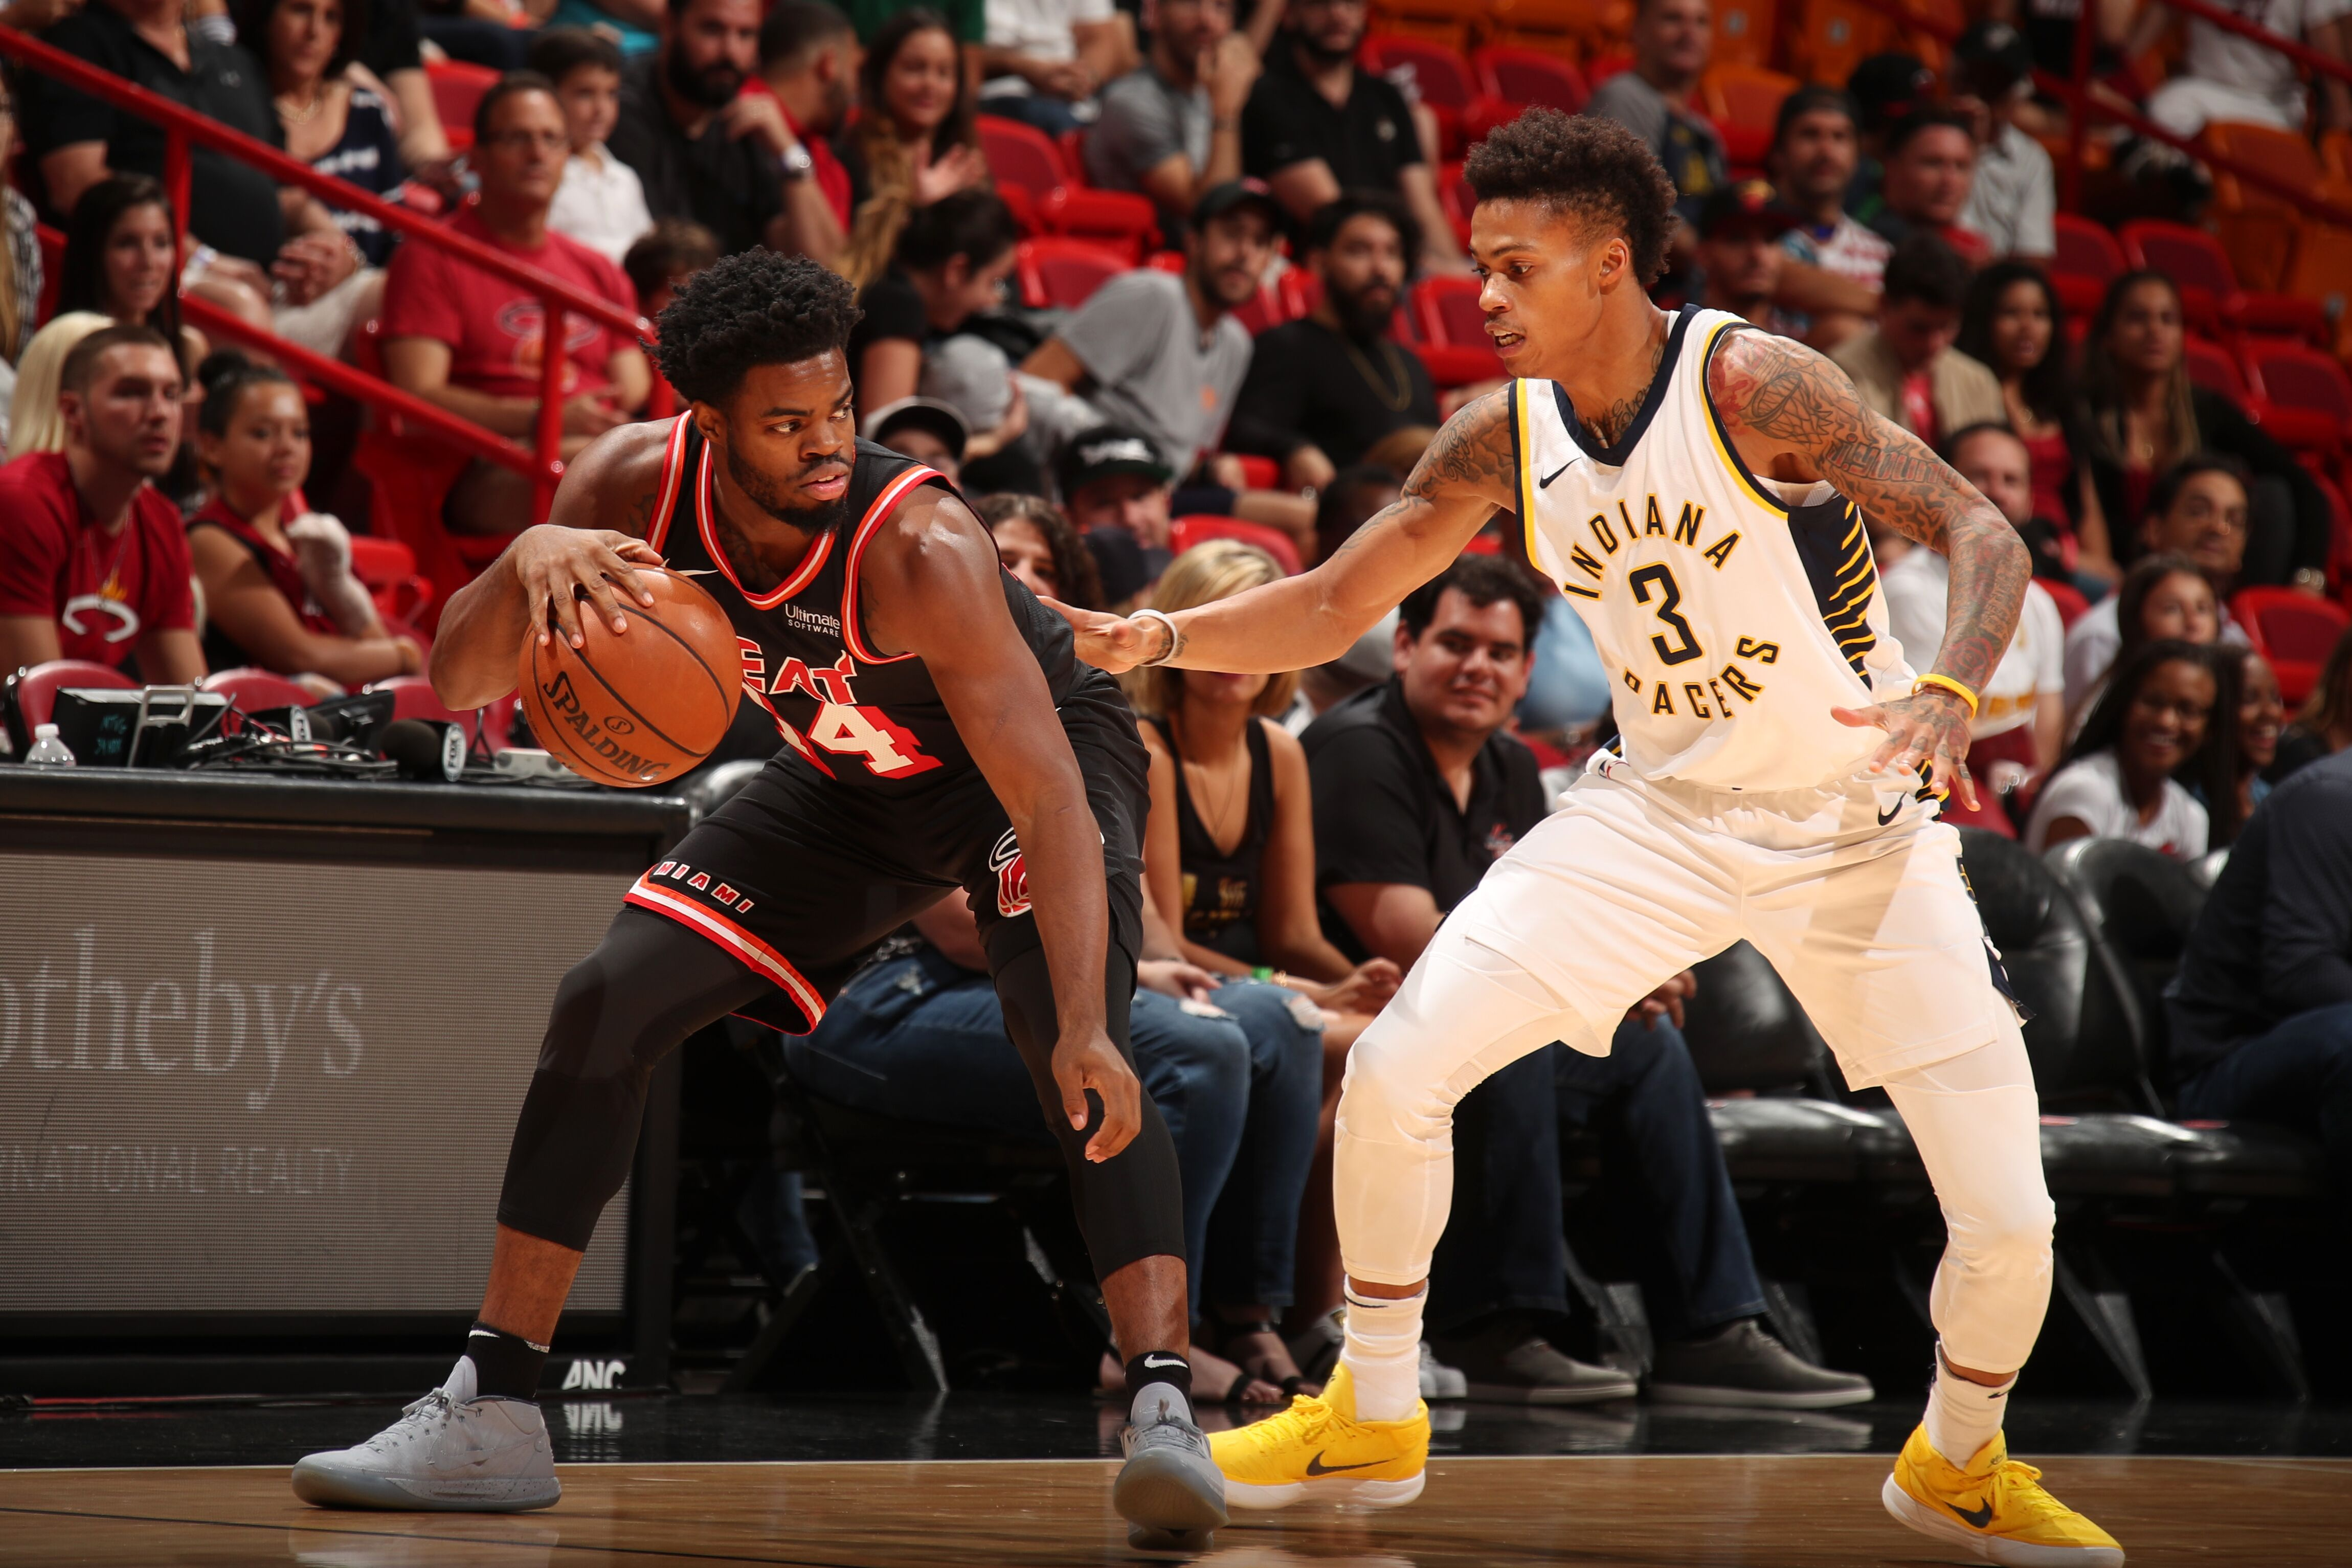 876408556-indiana-pacers-v-miami-heat.jpg